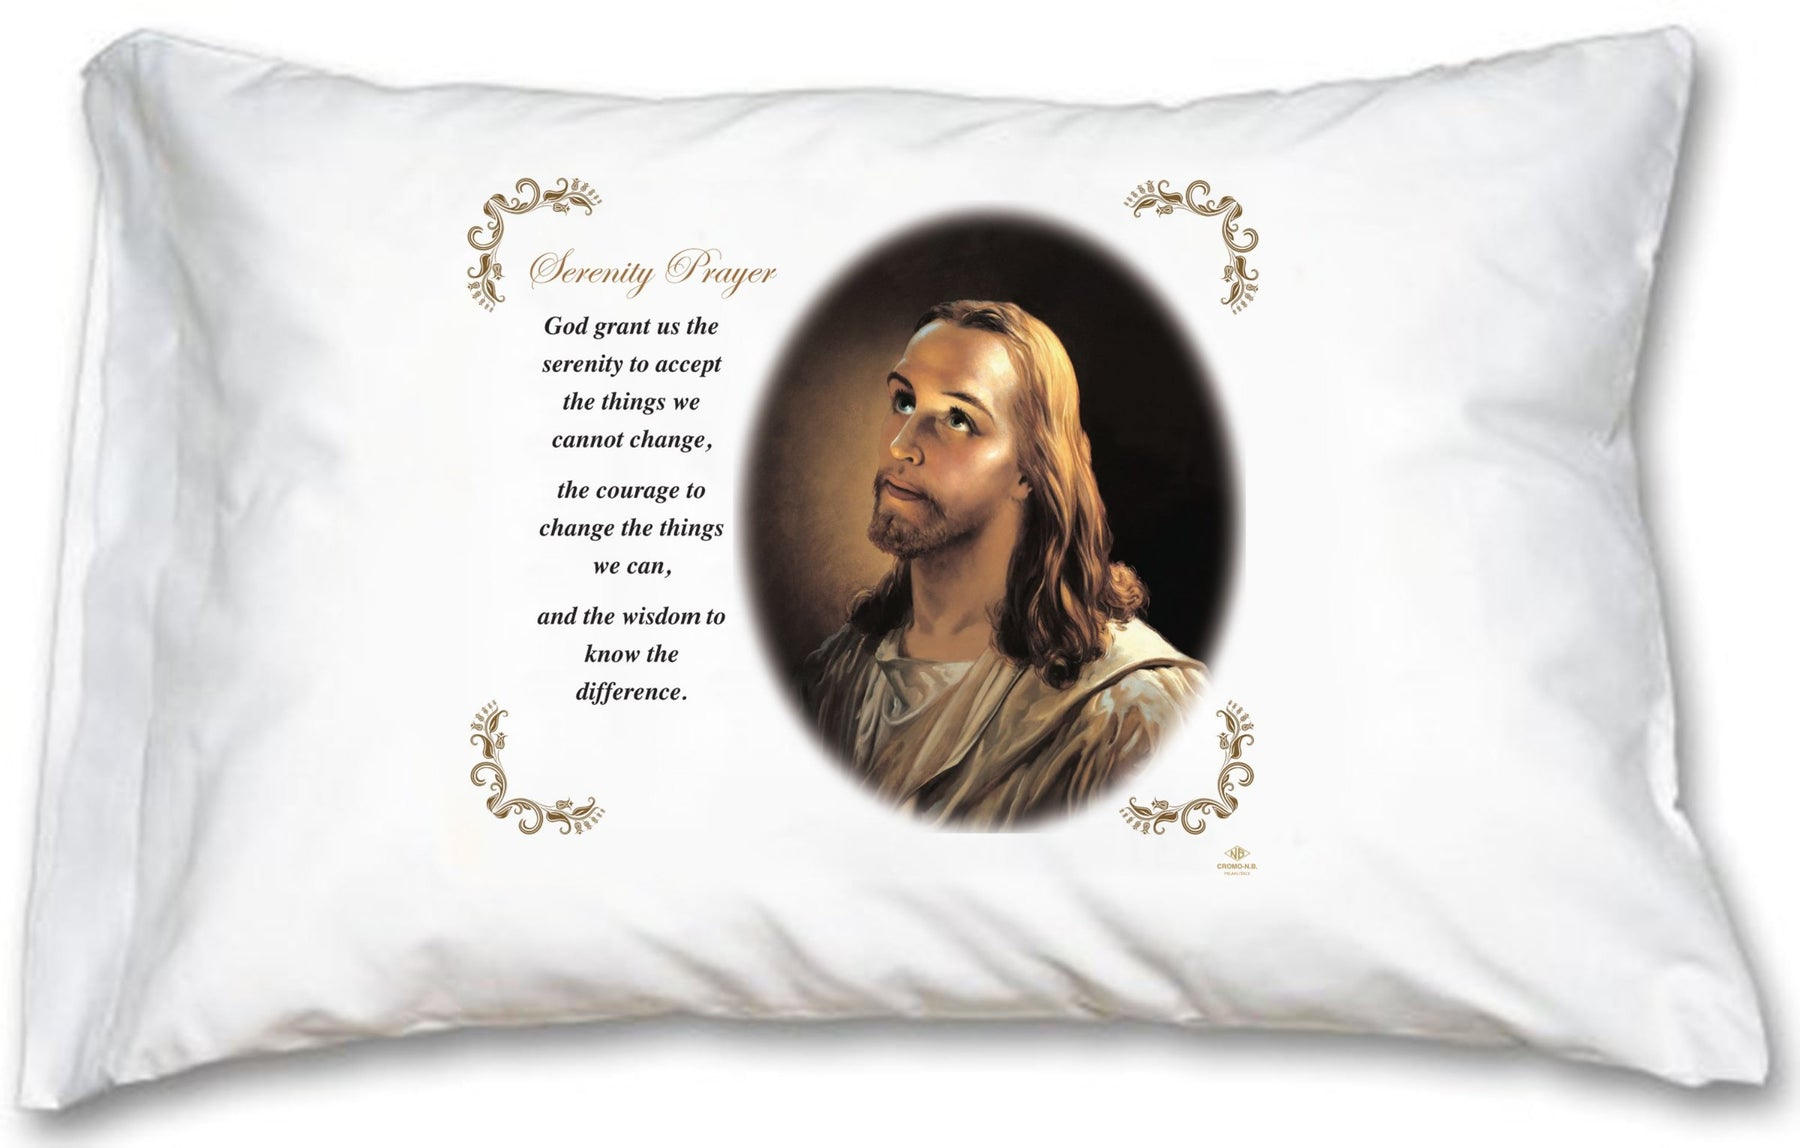 Serenity Prayer Head of Christ Pillow Case - English Prayer